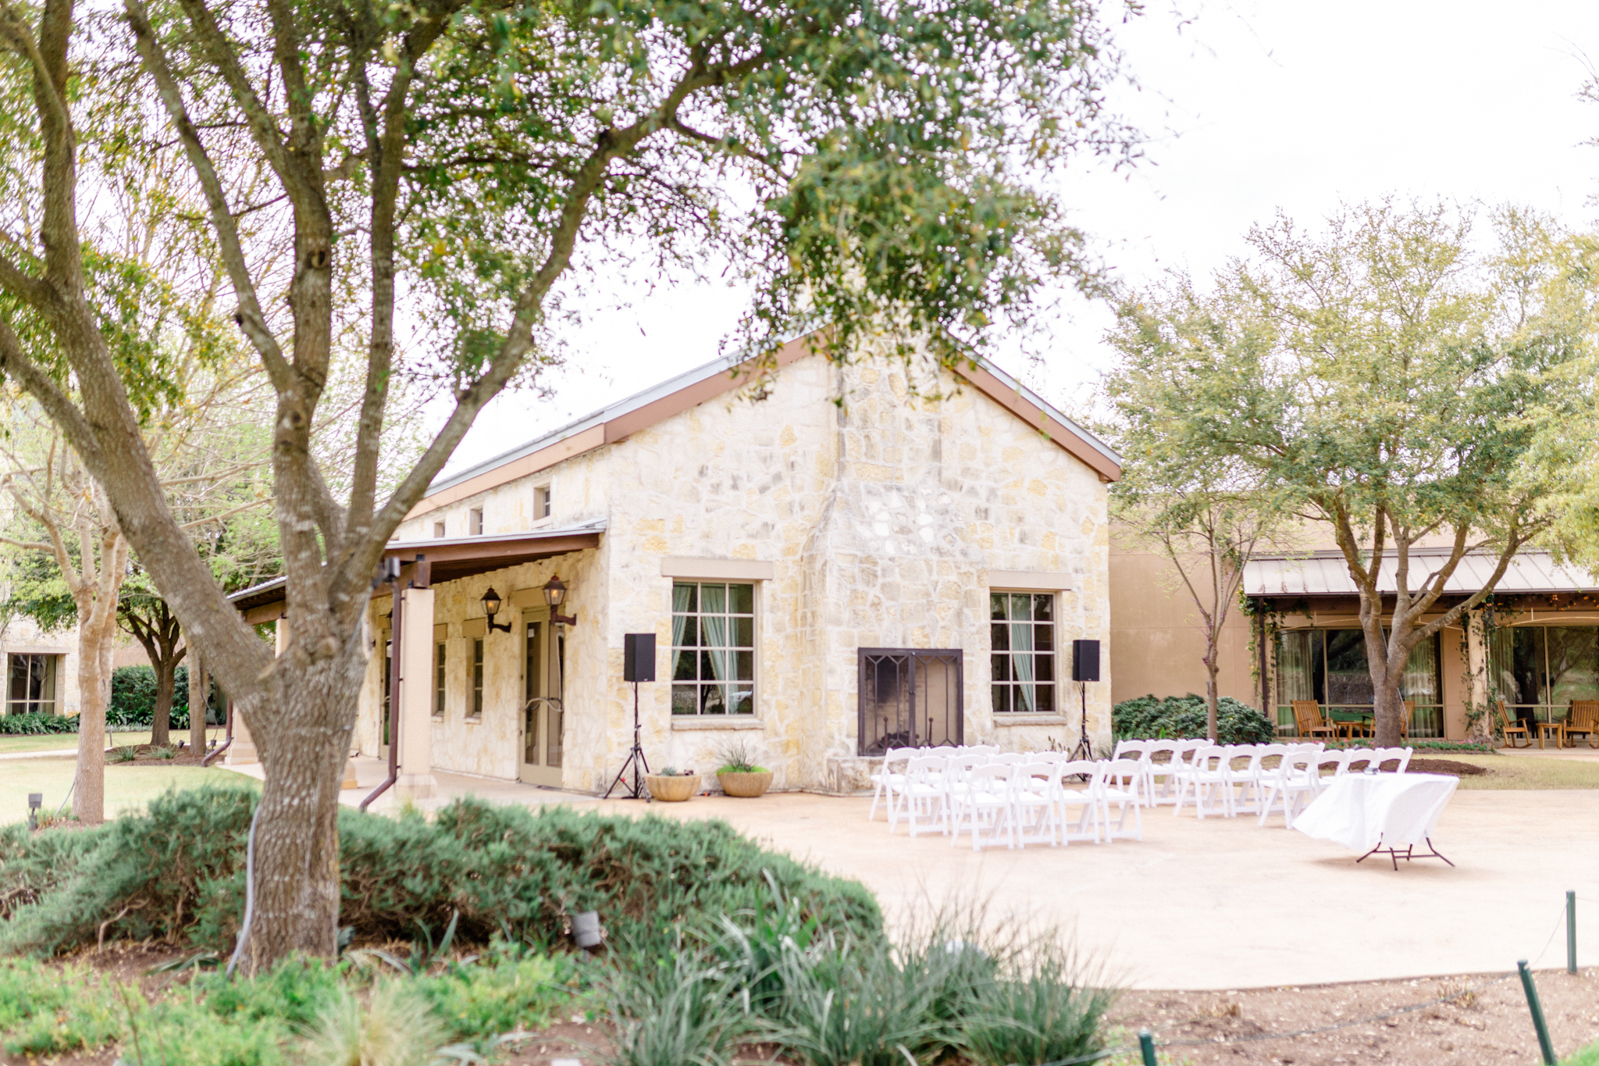 San Antonio Austin Boerne New Braunfels Texas Wedding Engagement Photographer Photography Hill Country Texas JW Marriott Sunday House Wedding Spring Wedding Coral Pink Intimate Wedding San Antonio Austin Texas photographer 2